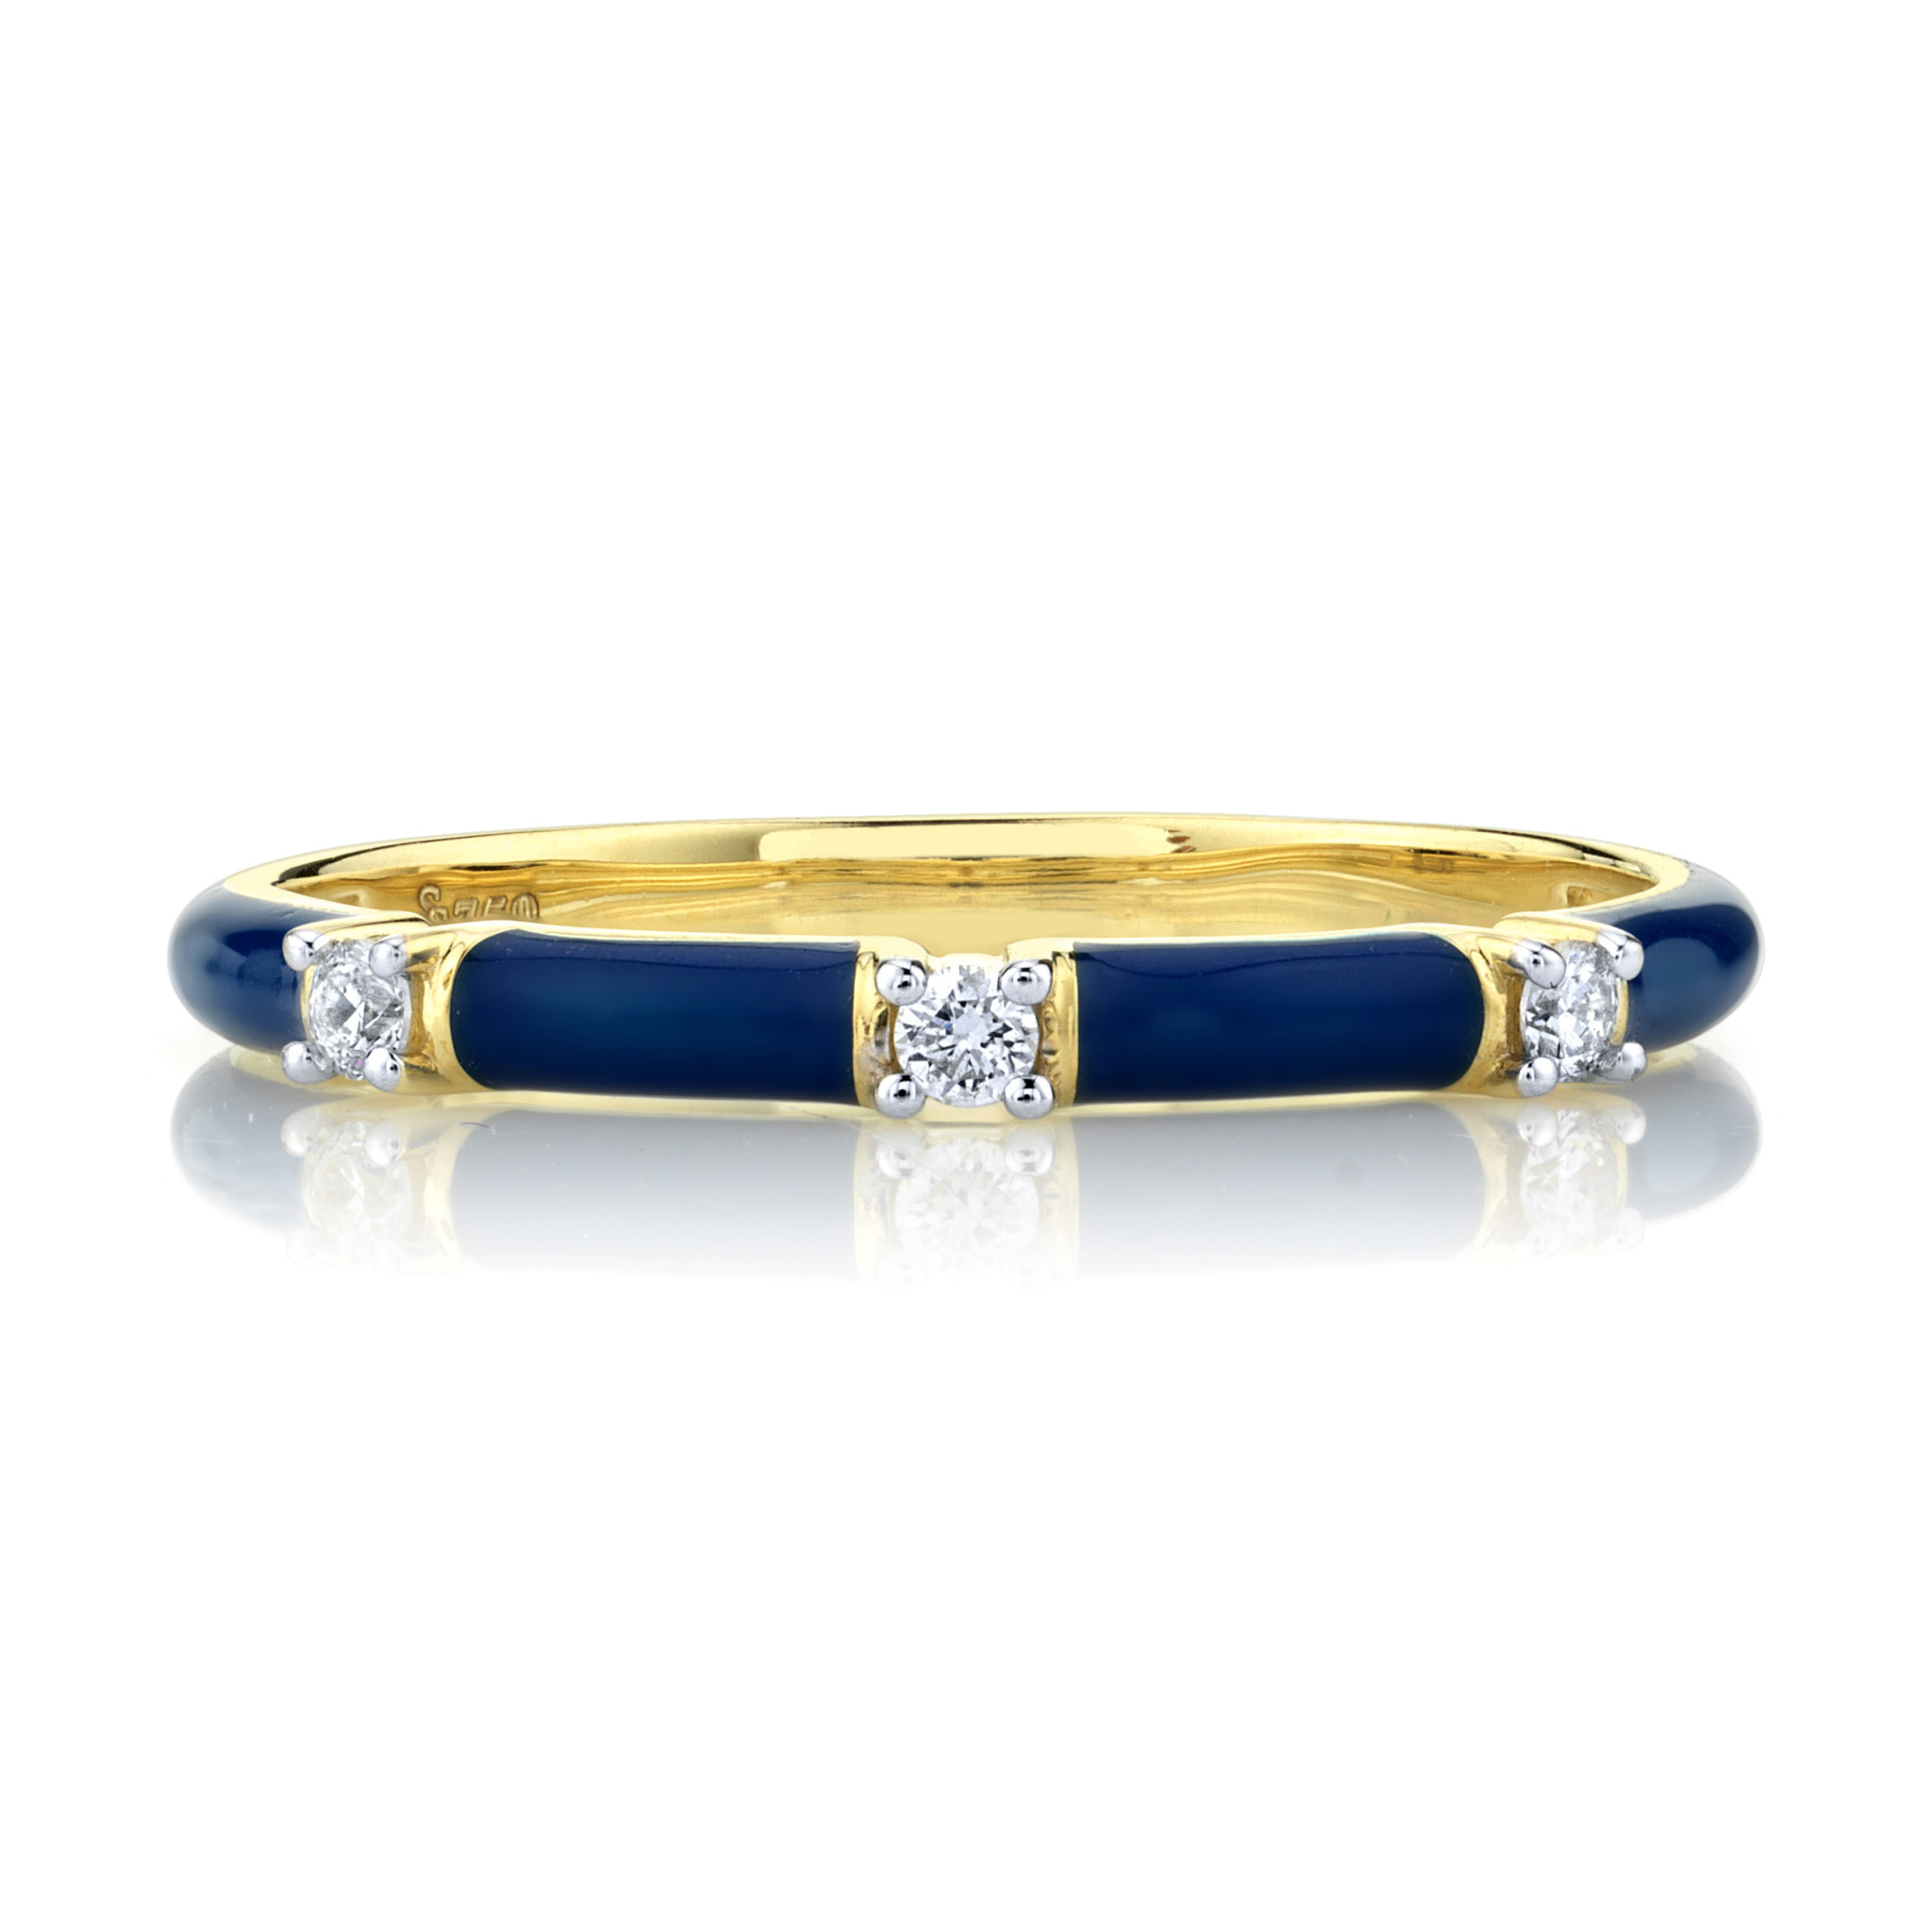 Blue Enamel Stacker Ring with White Diamond Detail 18KY (5.5)